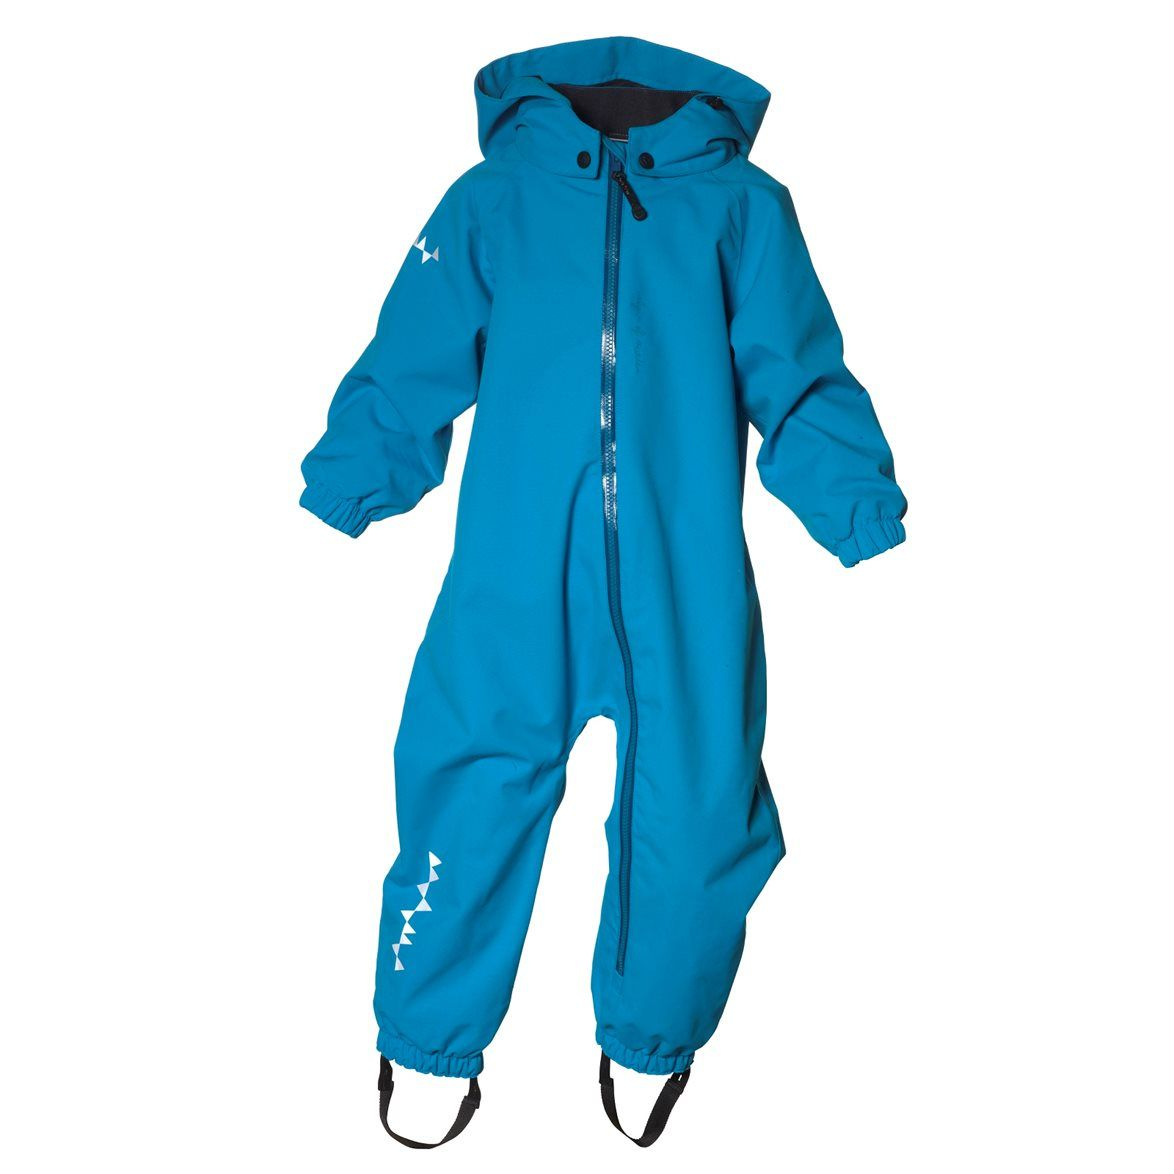 We are delighted to offer this new TODDLER jumpsuit designed for our toddlers, just starting to walk. This is a 100% wind- and waterproof jumpsuit, fully taped, offering the same quality and technical function as the taped garments for Kids and Teens. The TODDLER hardshell Jumpsuit is an alternat...